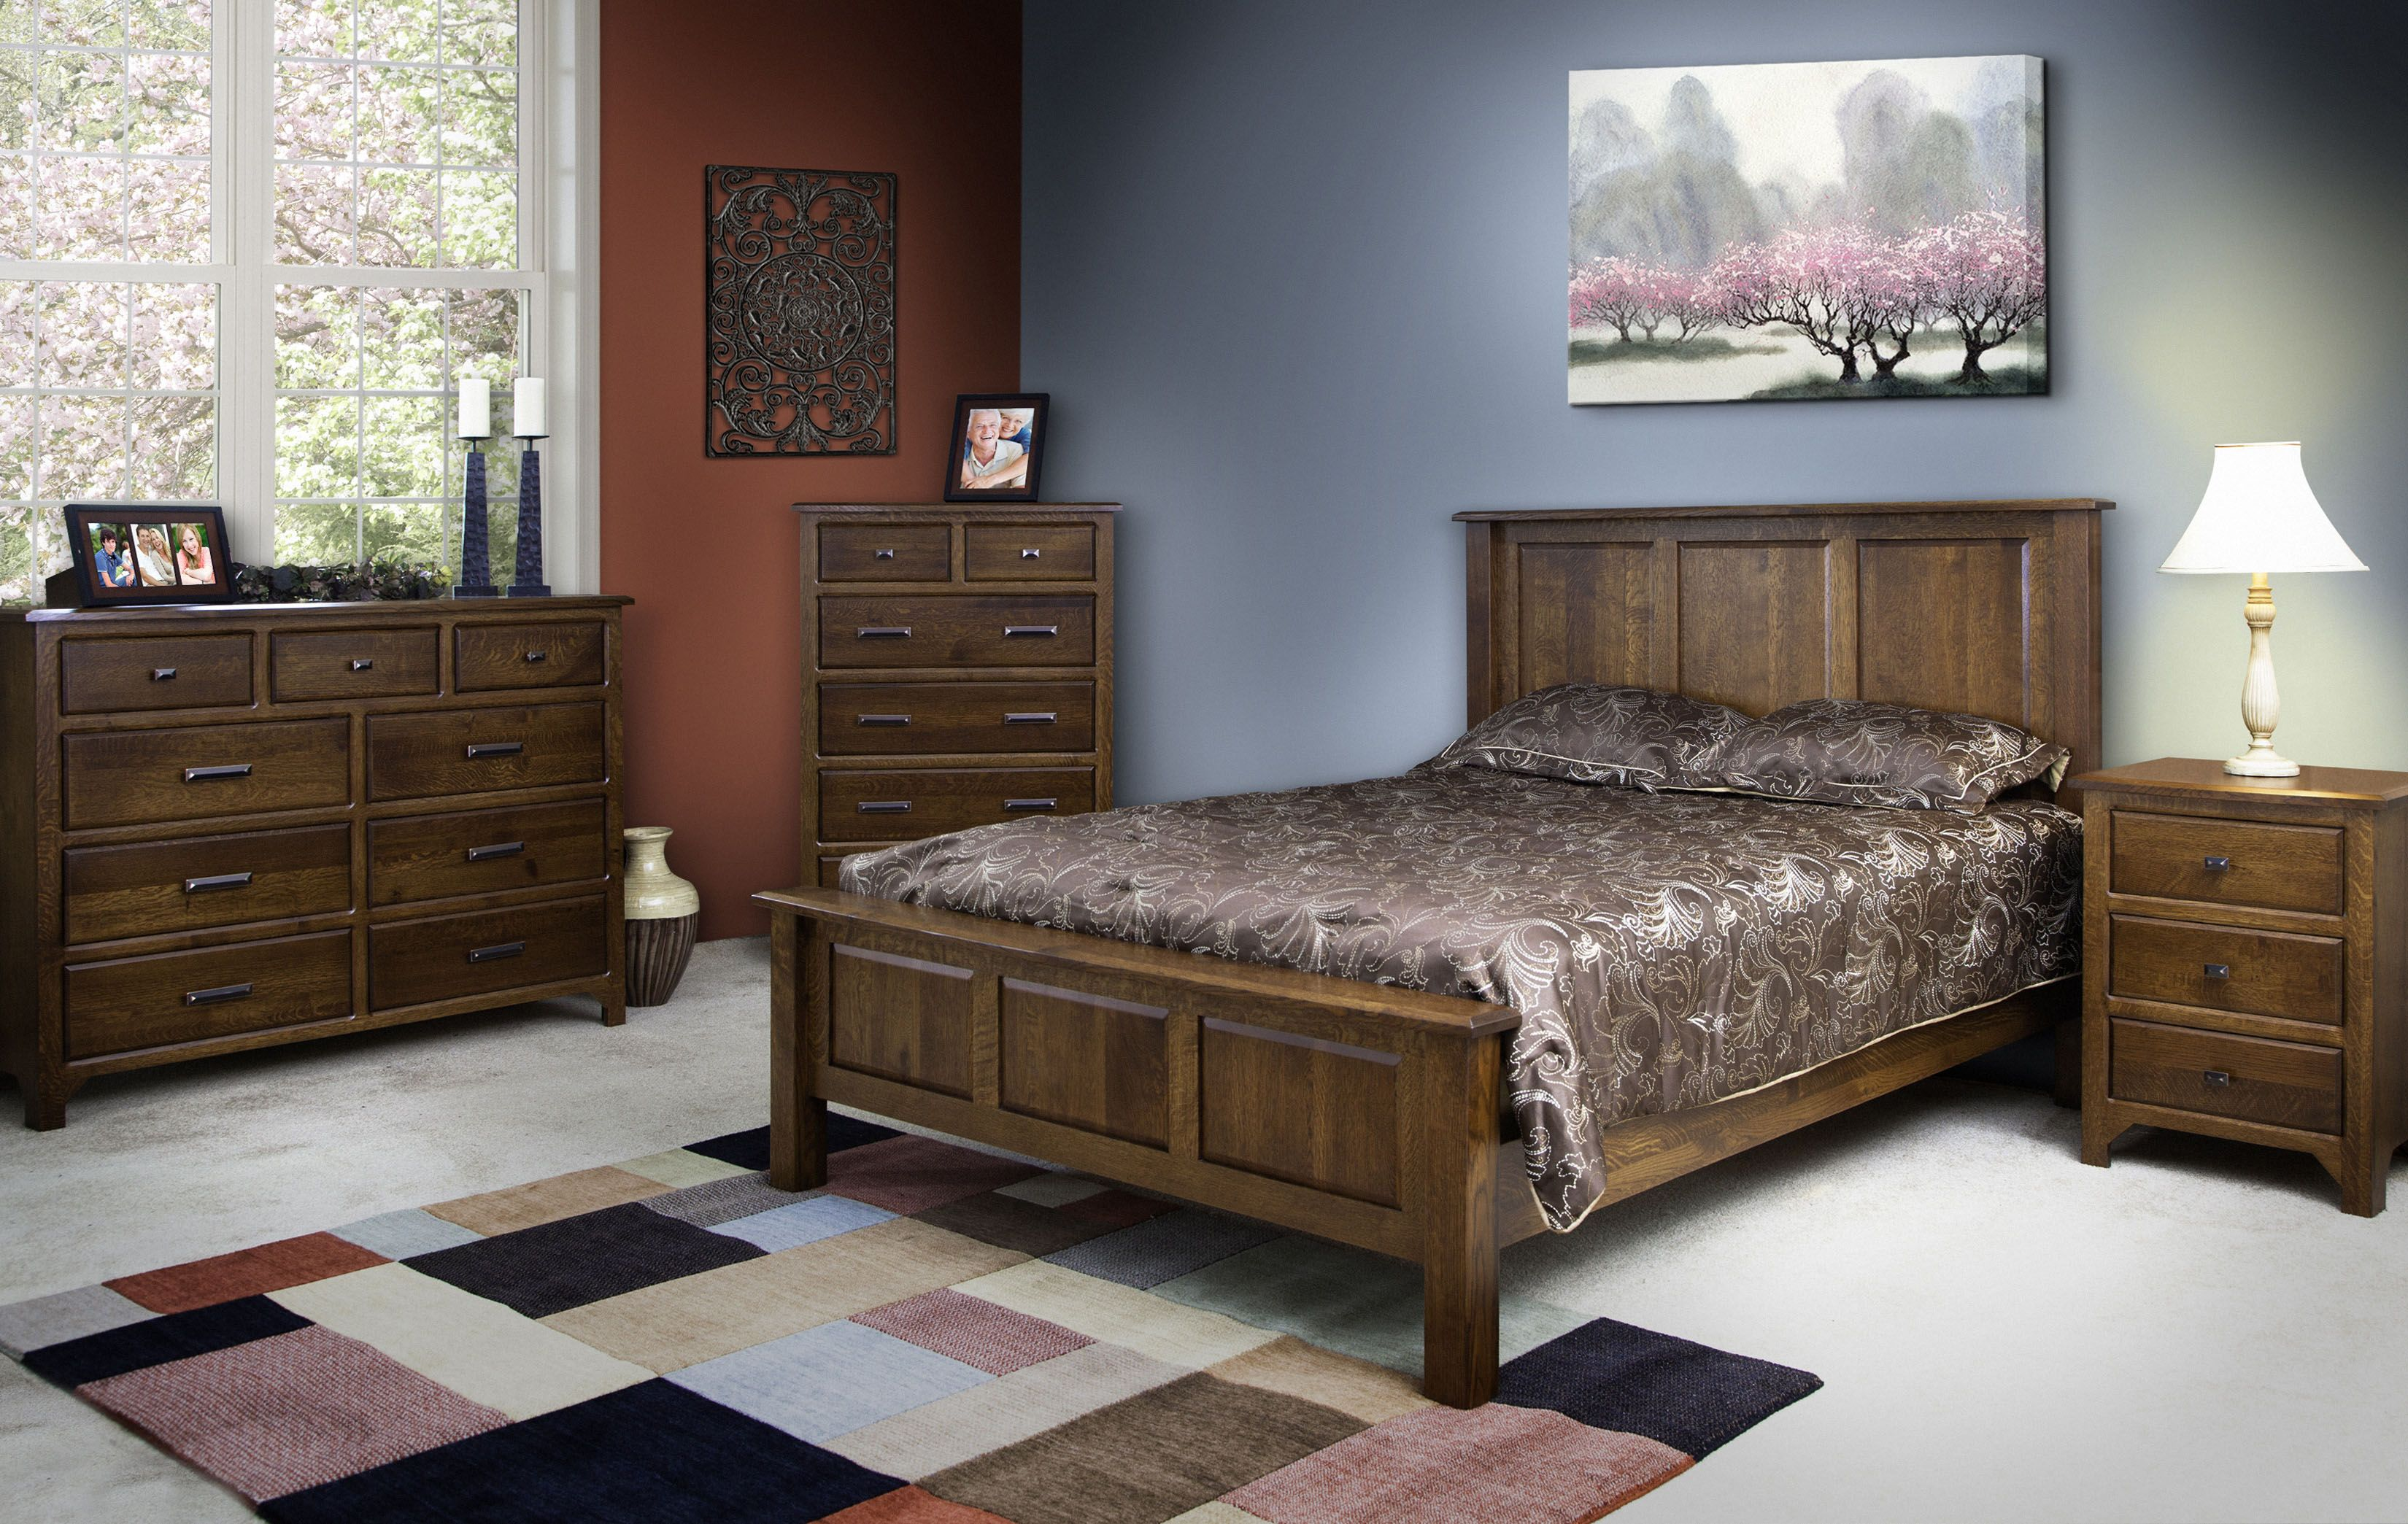 The Mission Hills Vintage Bed Is A Testament To Genuine Amish Woodworking.  All Beds Are Handcrafted From Solid Hardwood In Your Selected Wood Species.